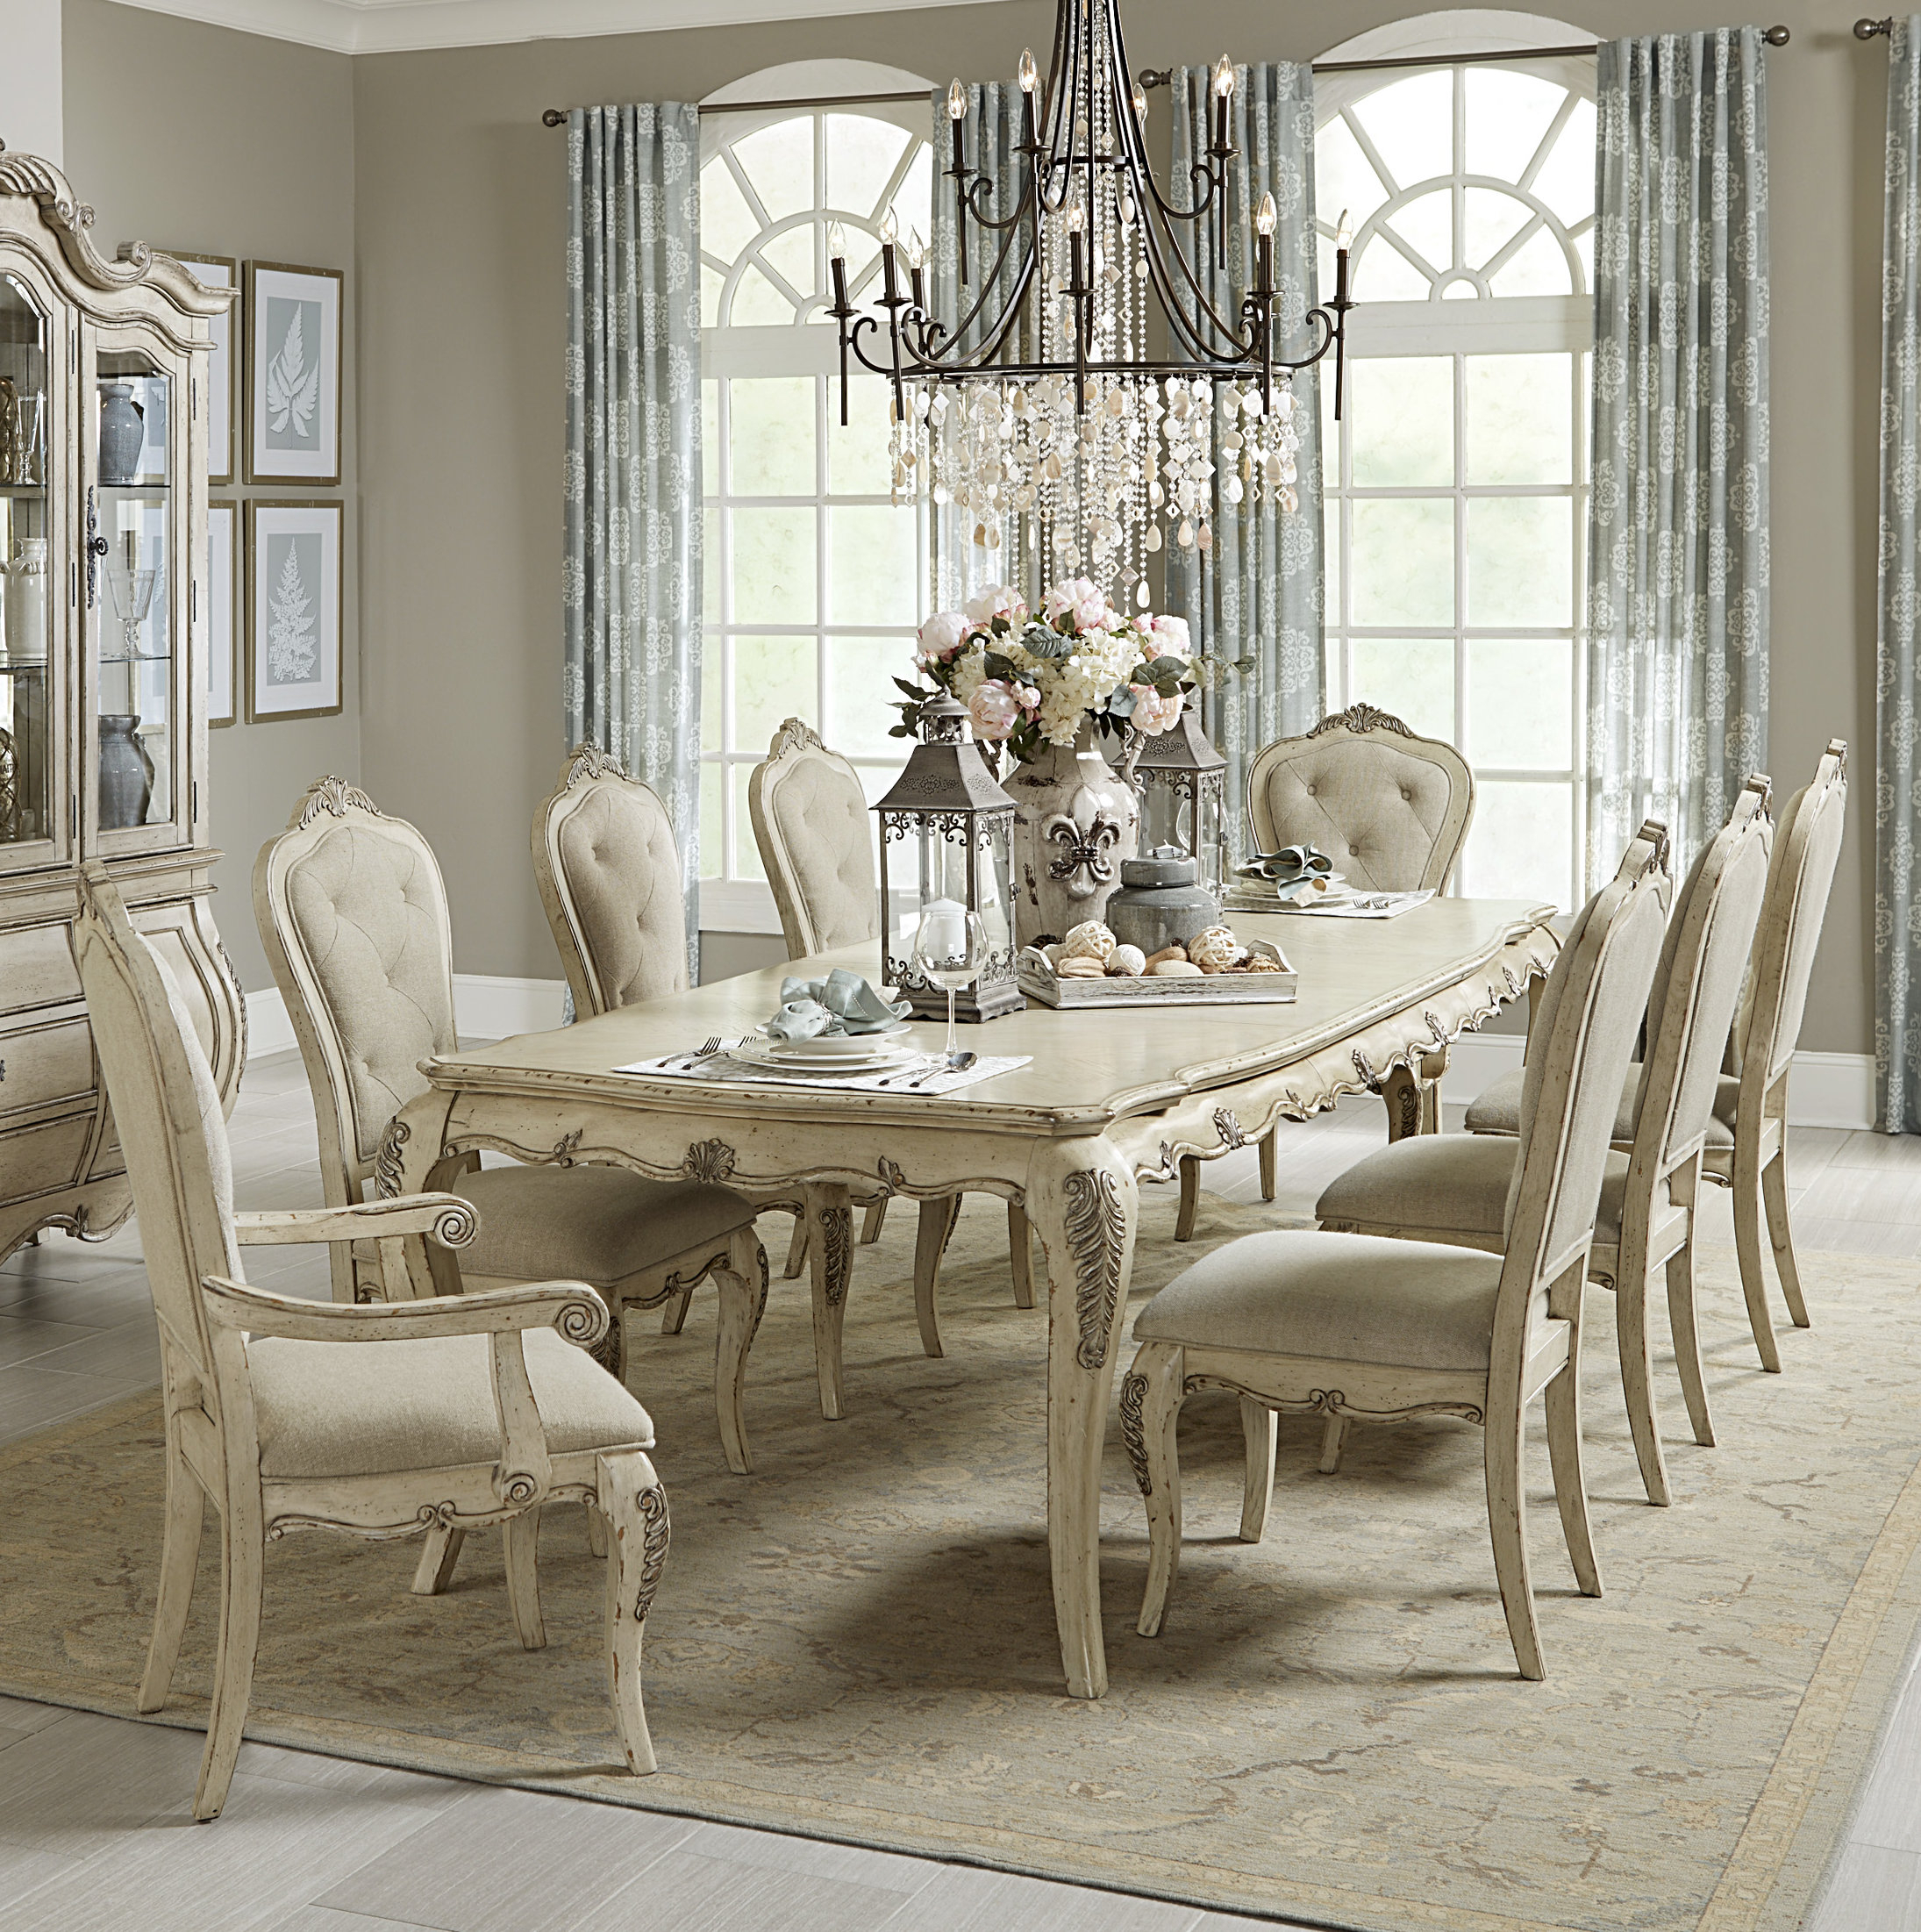 Mitzel 3 Piece Dining Sets With Regard To Most Recent House Of Hampton Mitzel Dining Table (View 3 of 20)